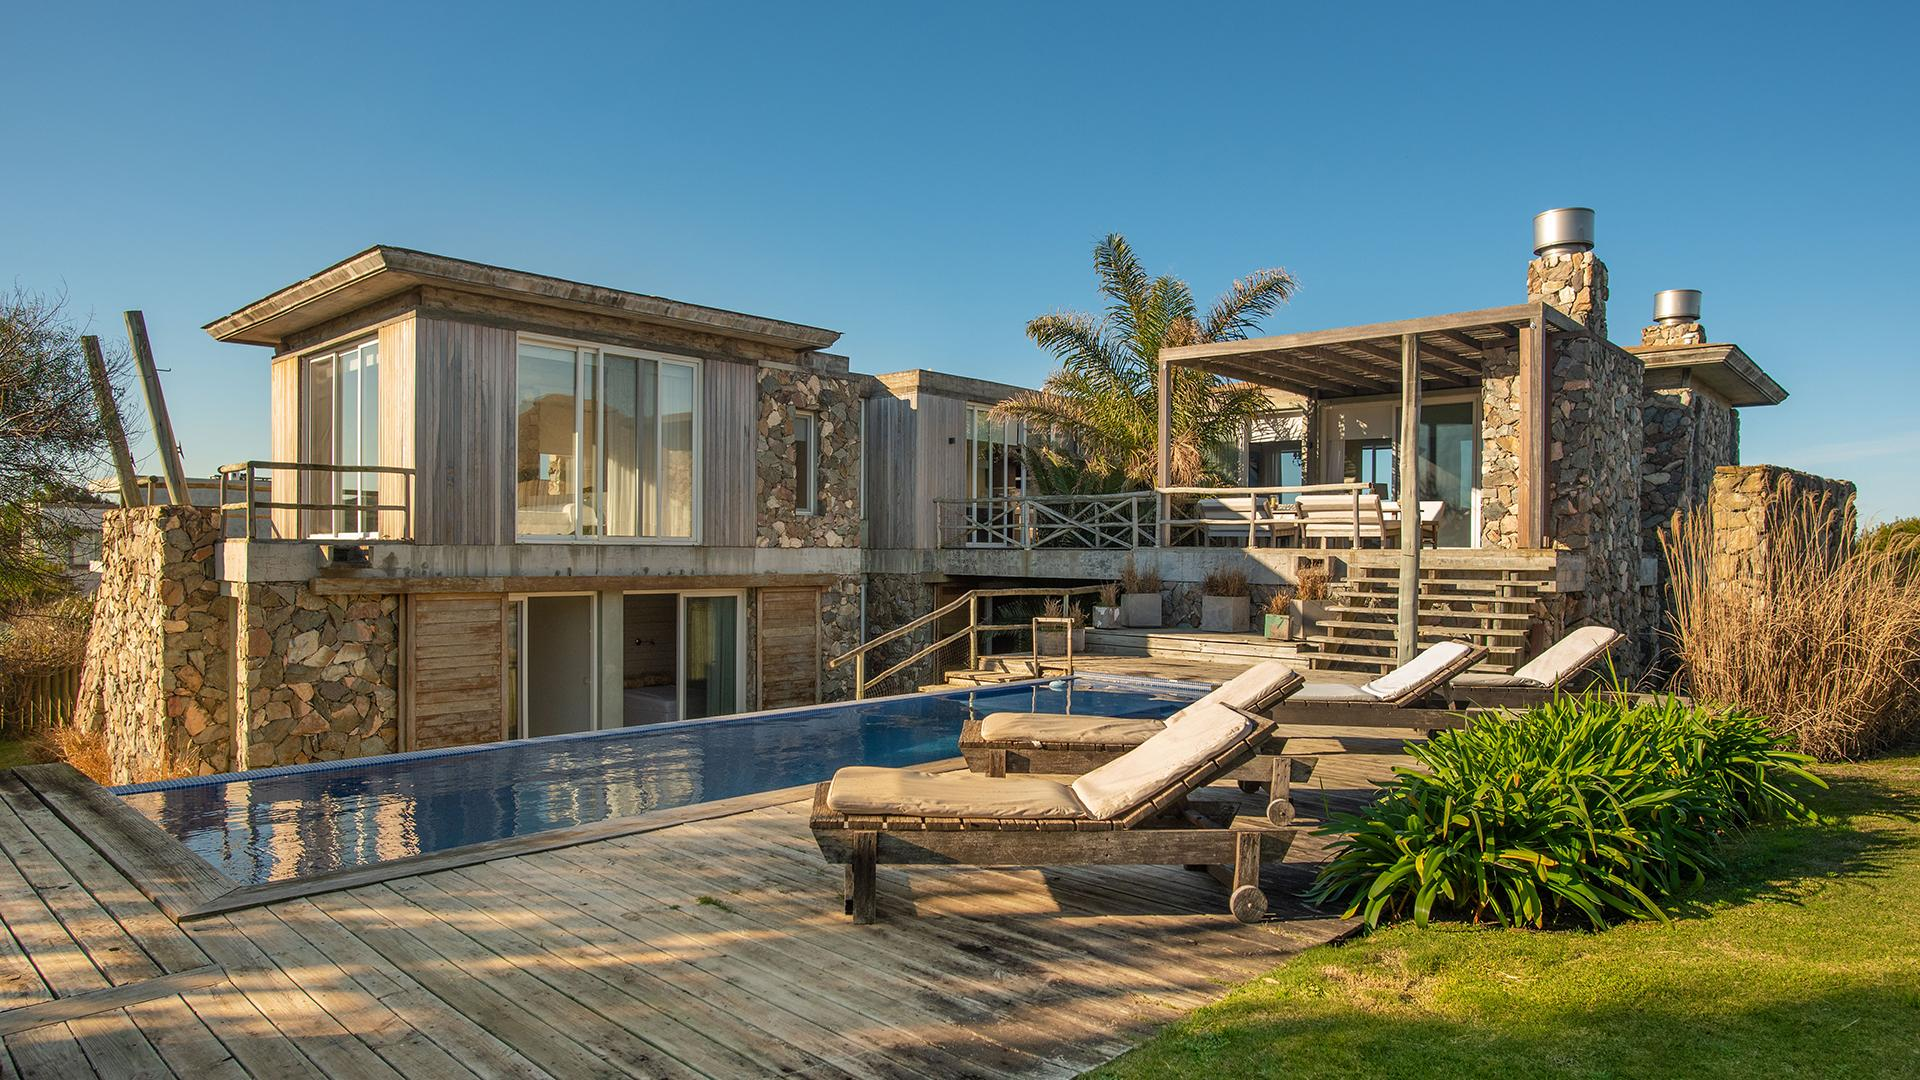 Ocean View Modern Villa  located in Jose Ignacio, Punta del Este, Uruguay, listed by Curiocity Villas.